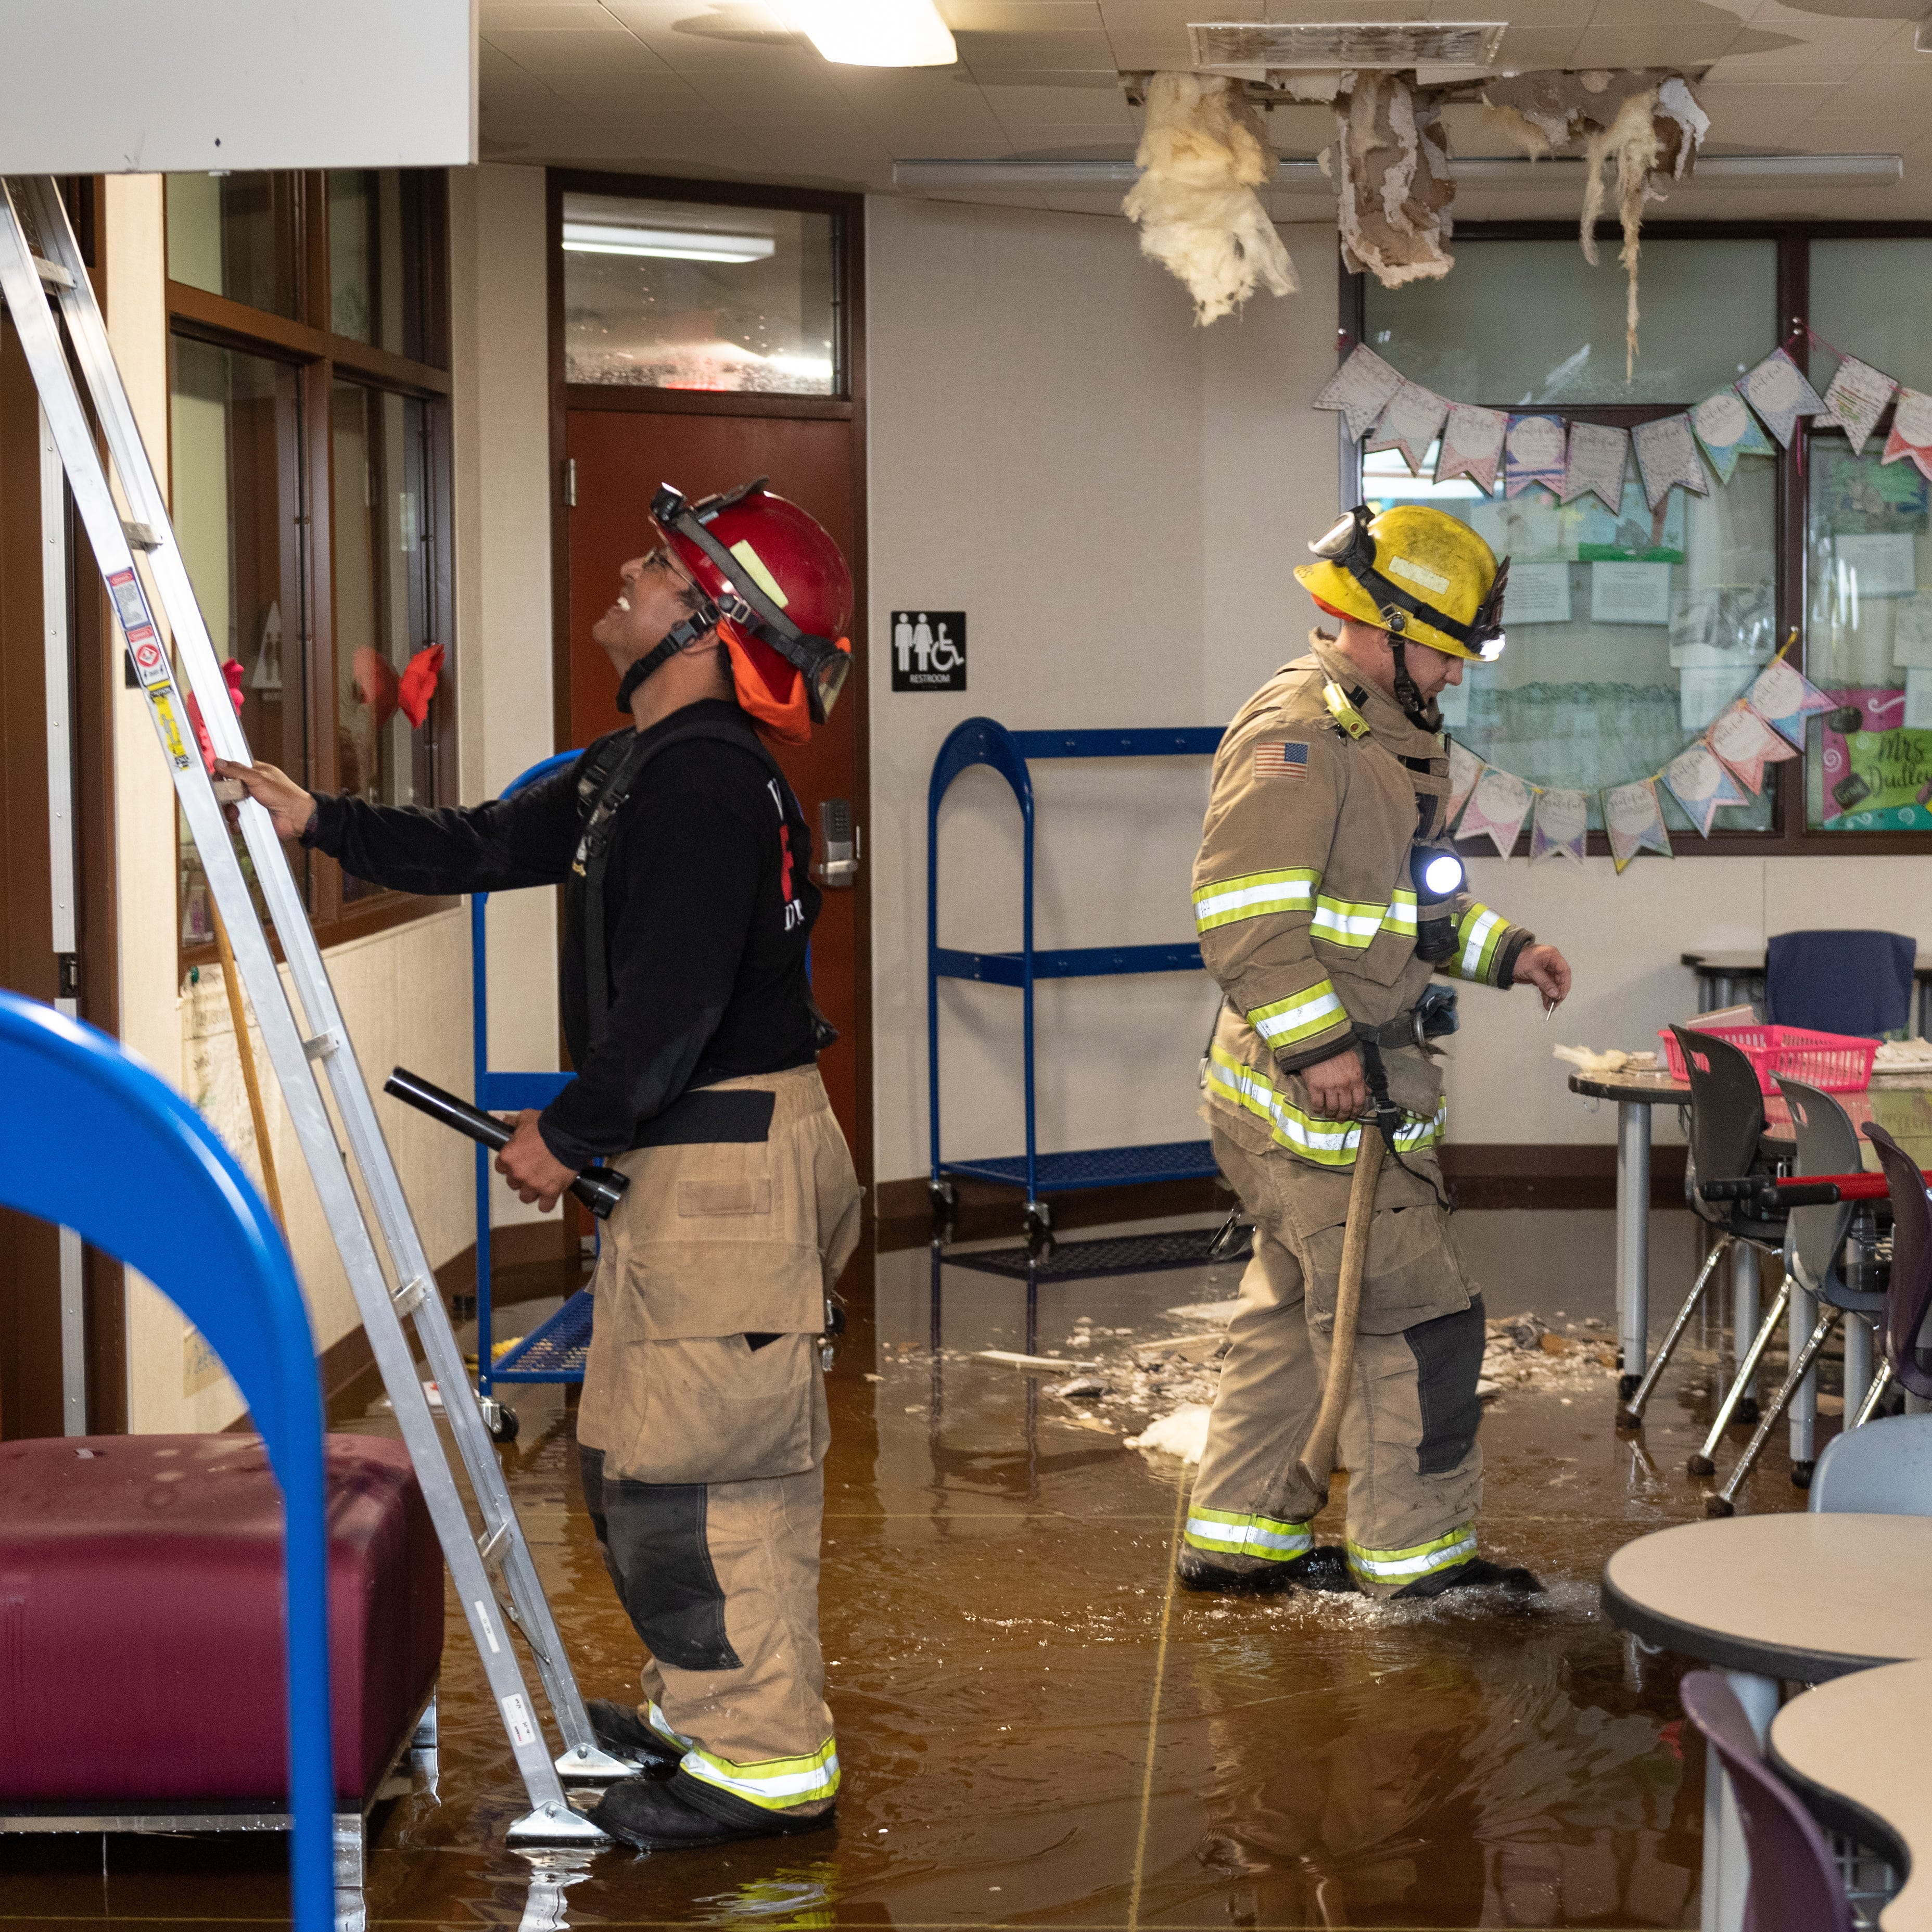 Fire sprinkler 'malfunction' leads to Riverway Elementary School flooding